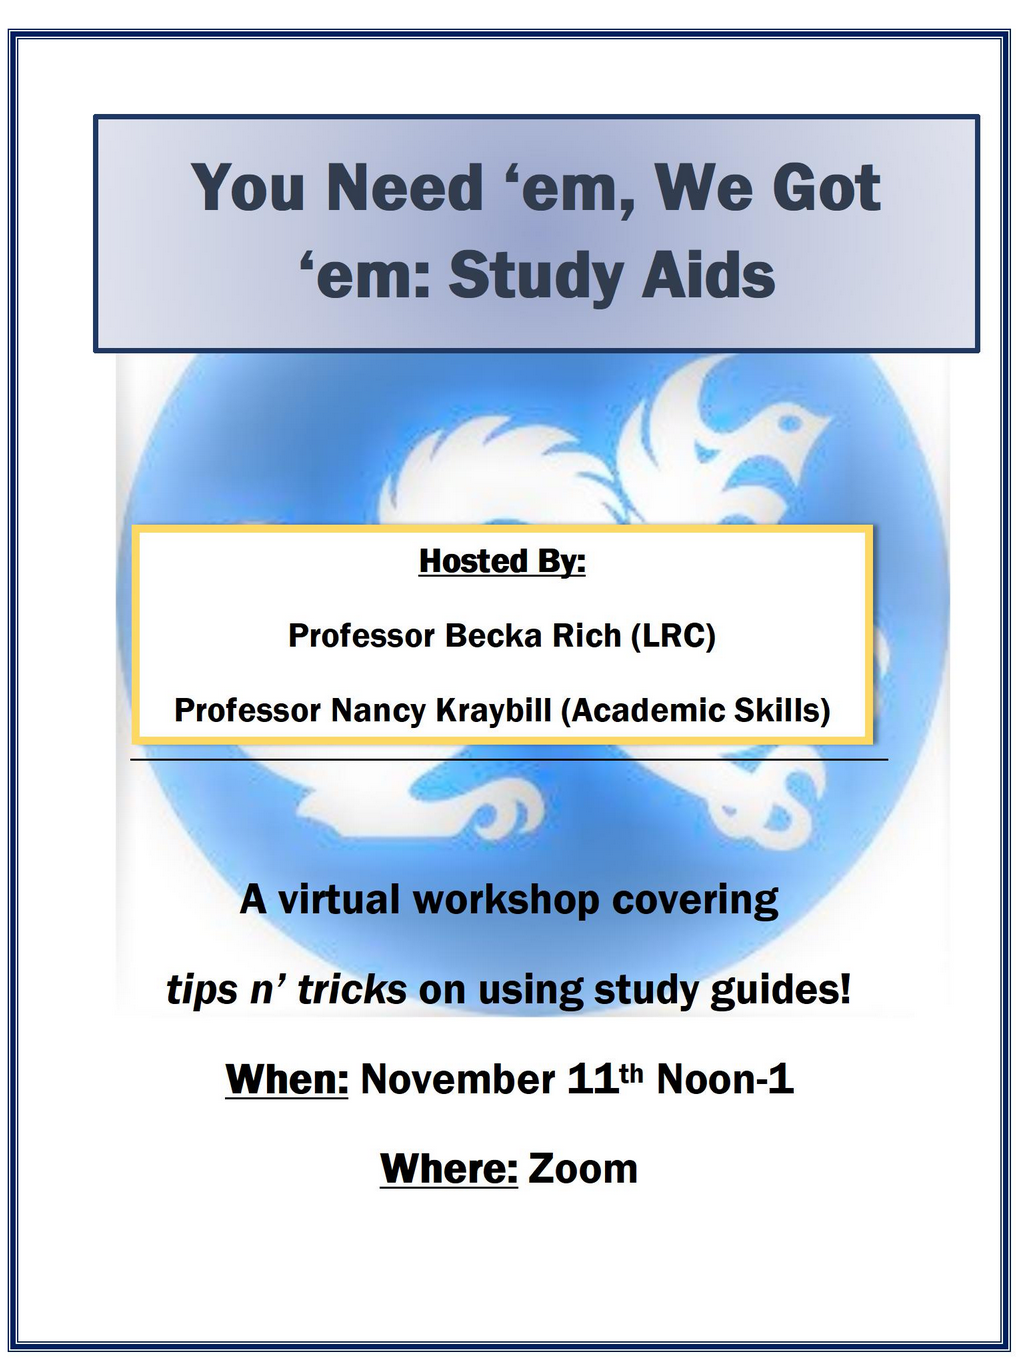 Flier for Study Aids event